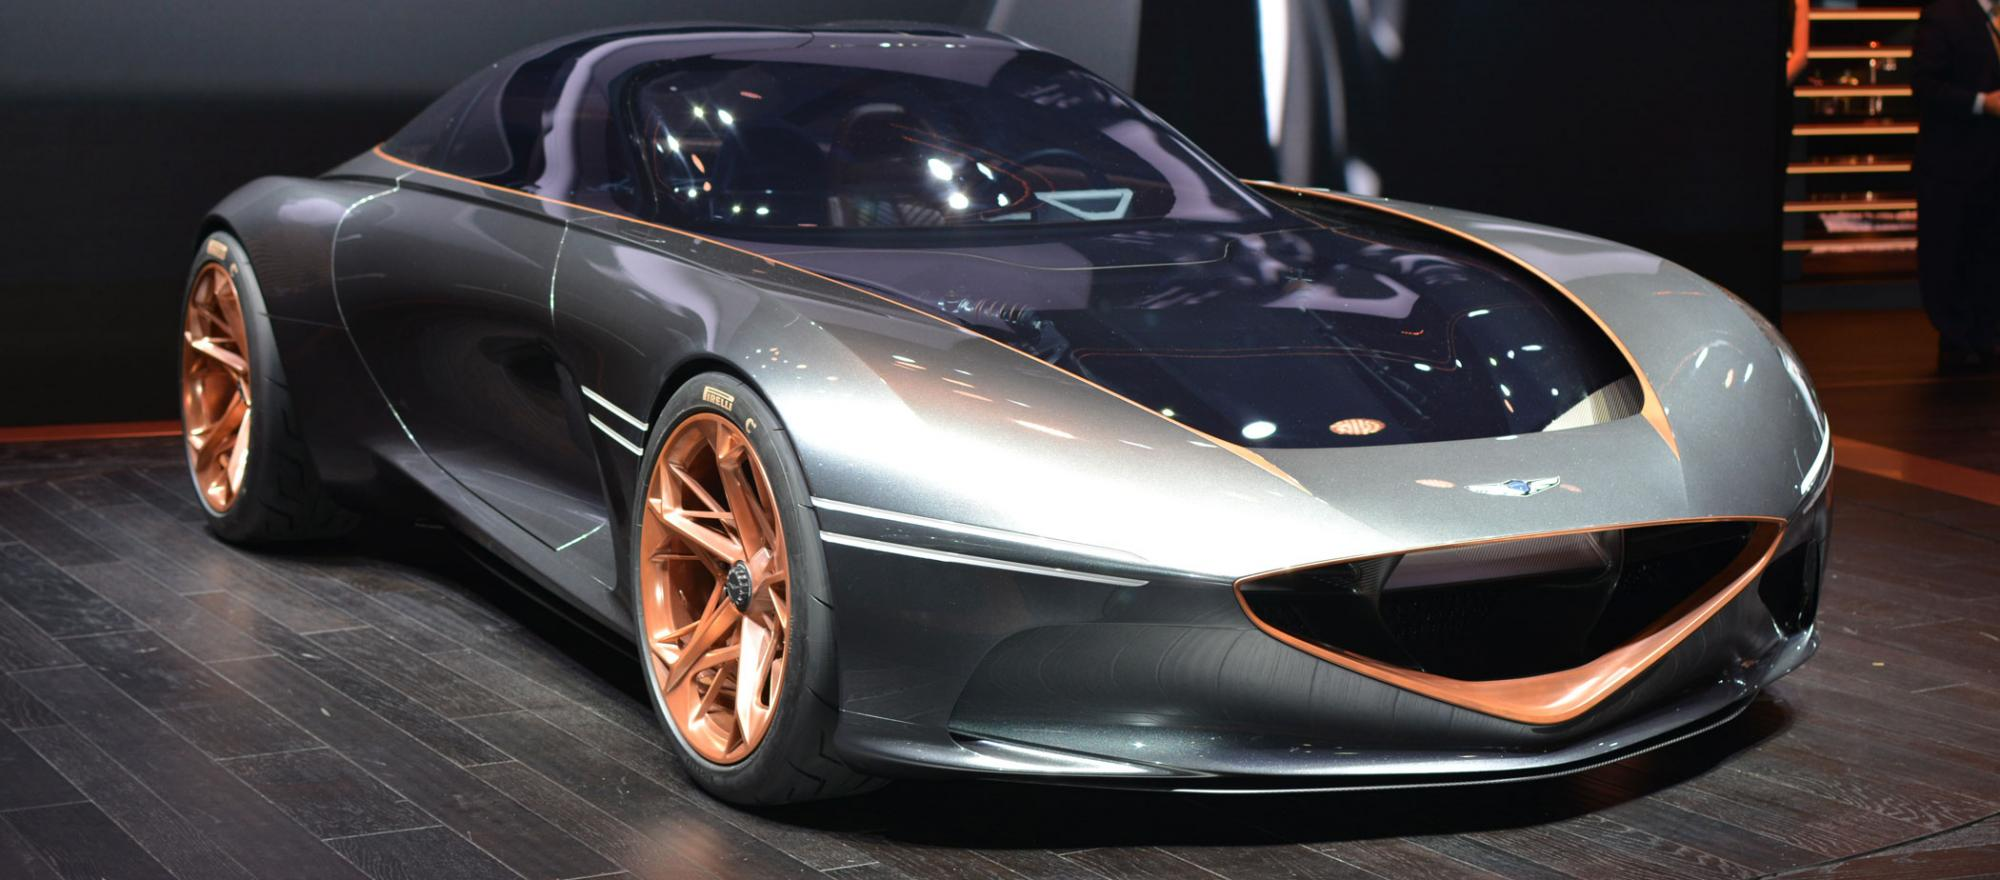 Genesis Essentia Concept Photo: Ian Whelan